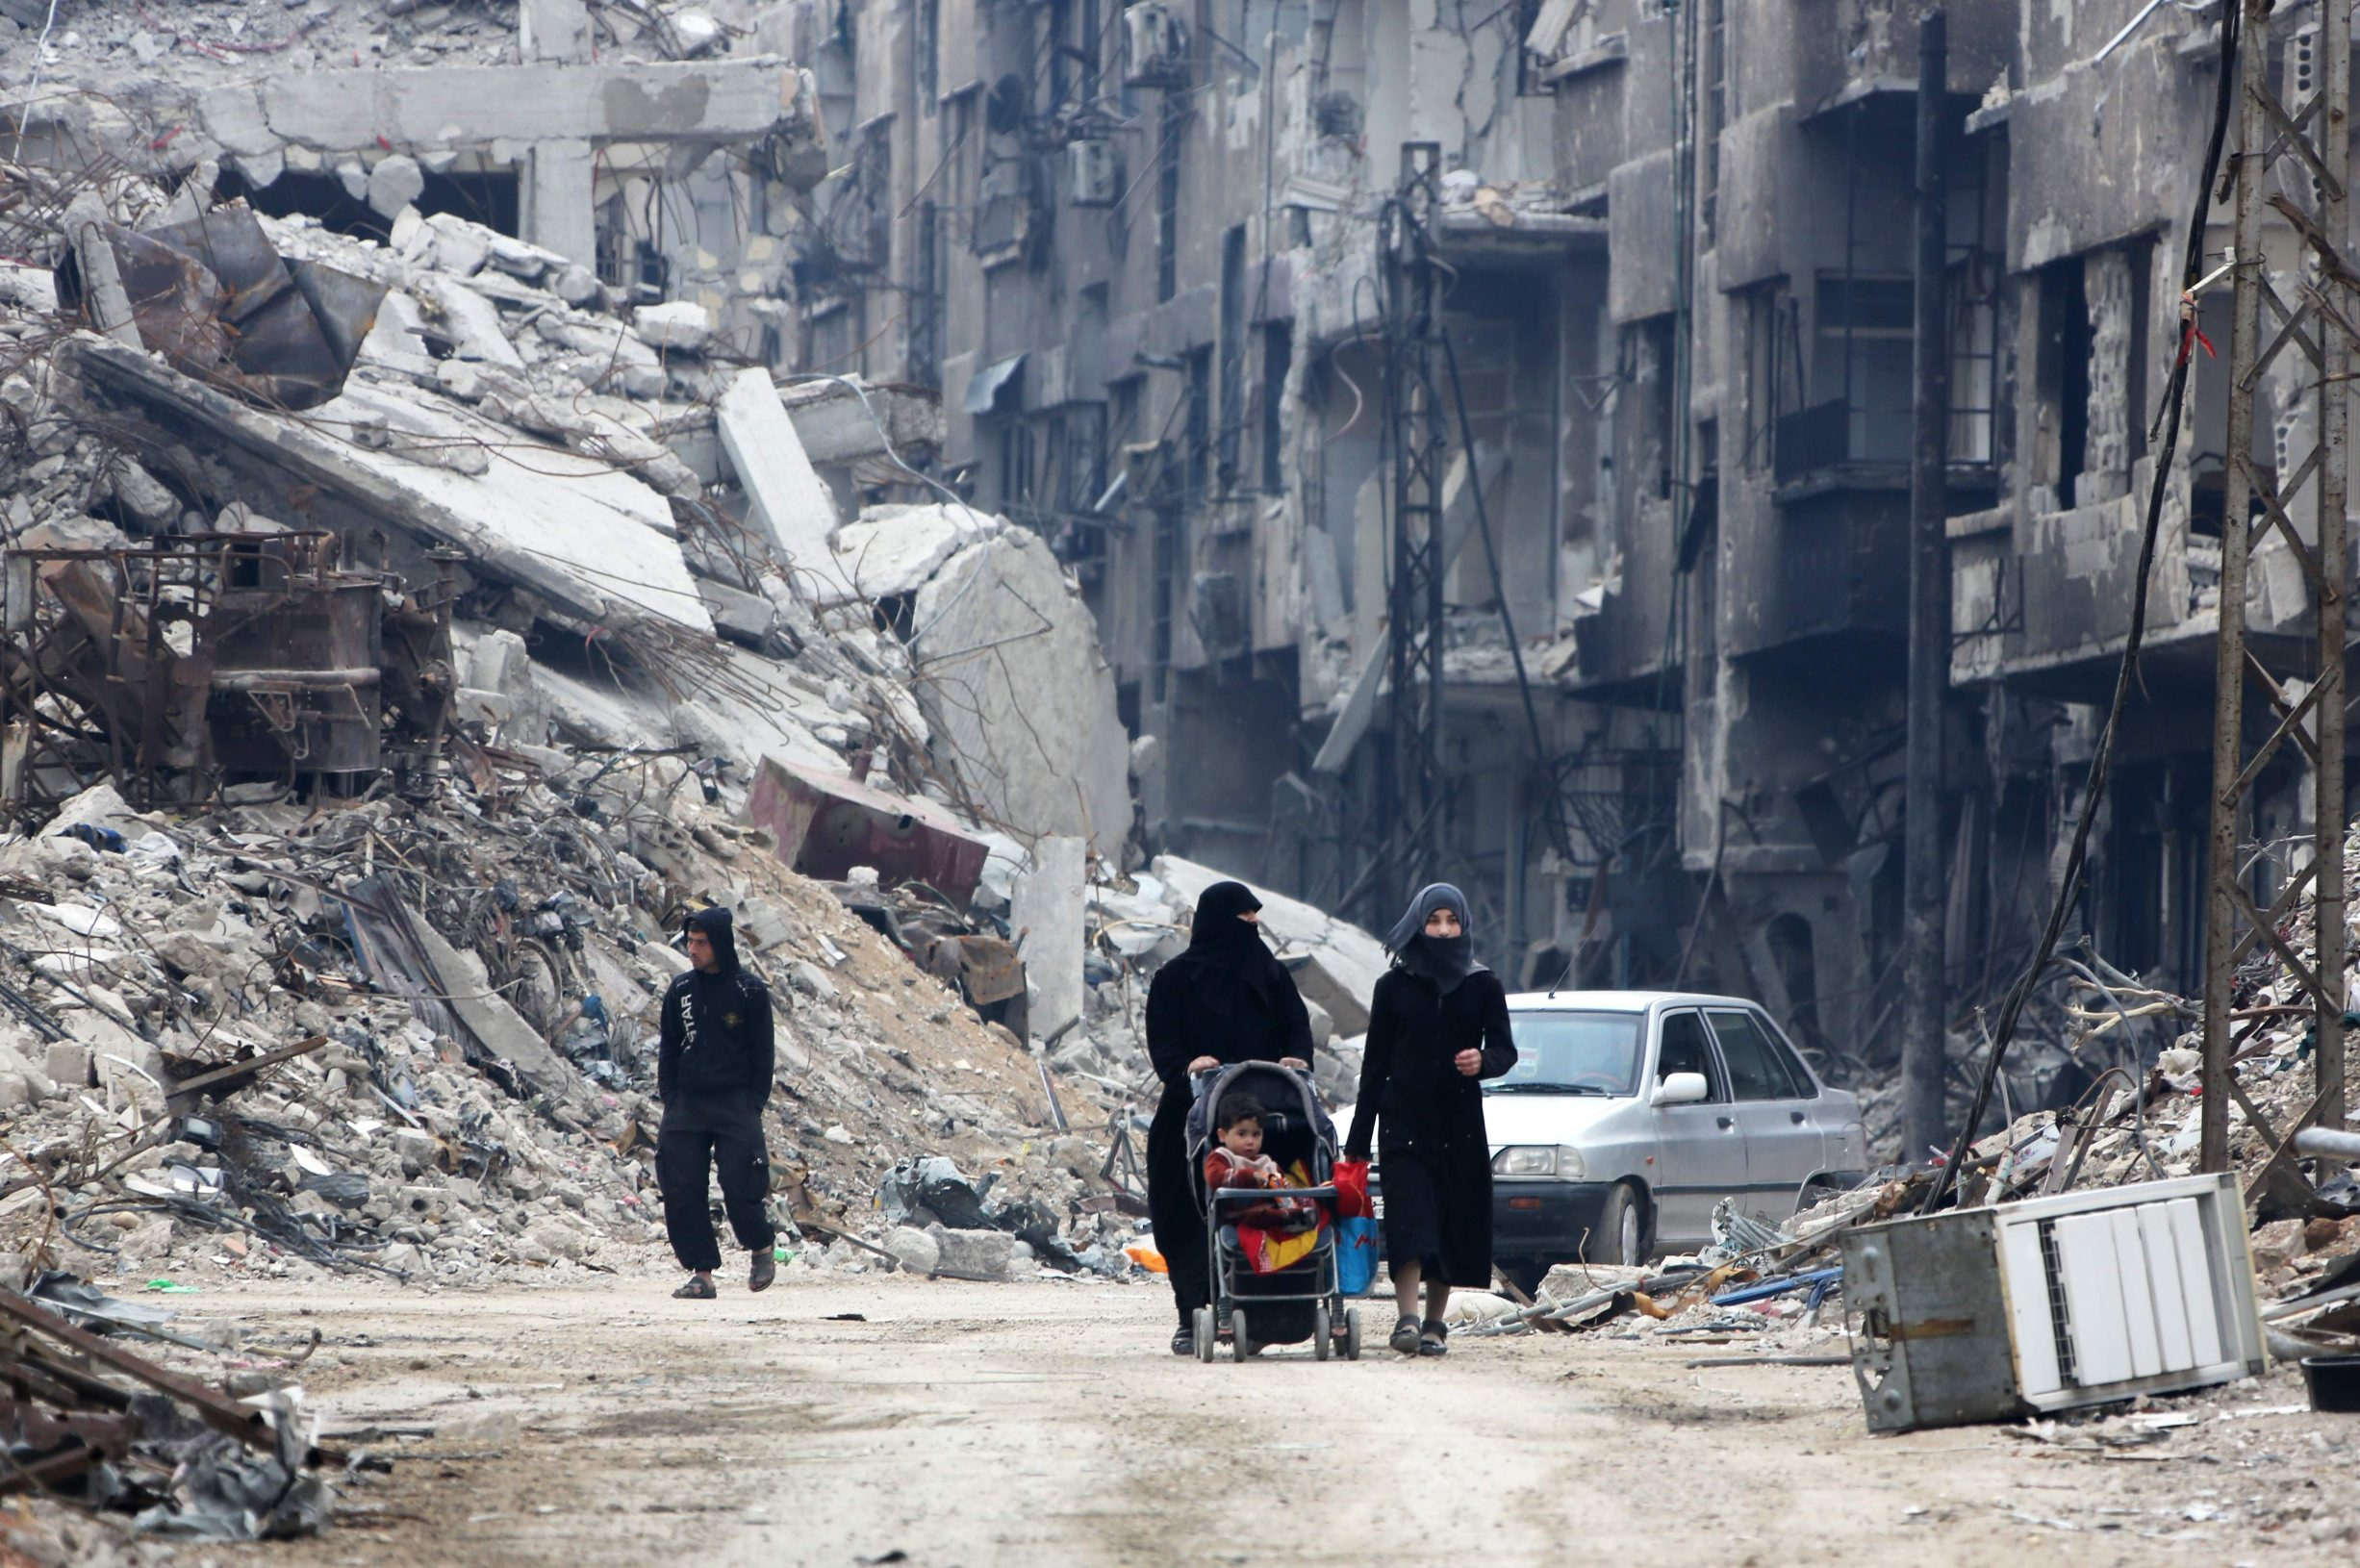 (FILES) In this file photo taken on March 30, 2018 Civilians walk along a destroyed street in the former rebel-held town of Harasta in Eastern Ghouta, a week after regime forces retook the town from the rebels. - As it enters its tenth year, the war in Syria is anything but abating as foreign powers scrap over a ravaged country where human suffering keeps reaching new levels. (Photo by STRINGER / AFP)